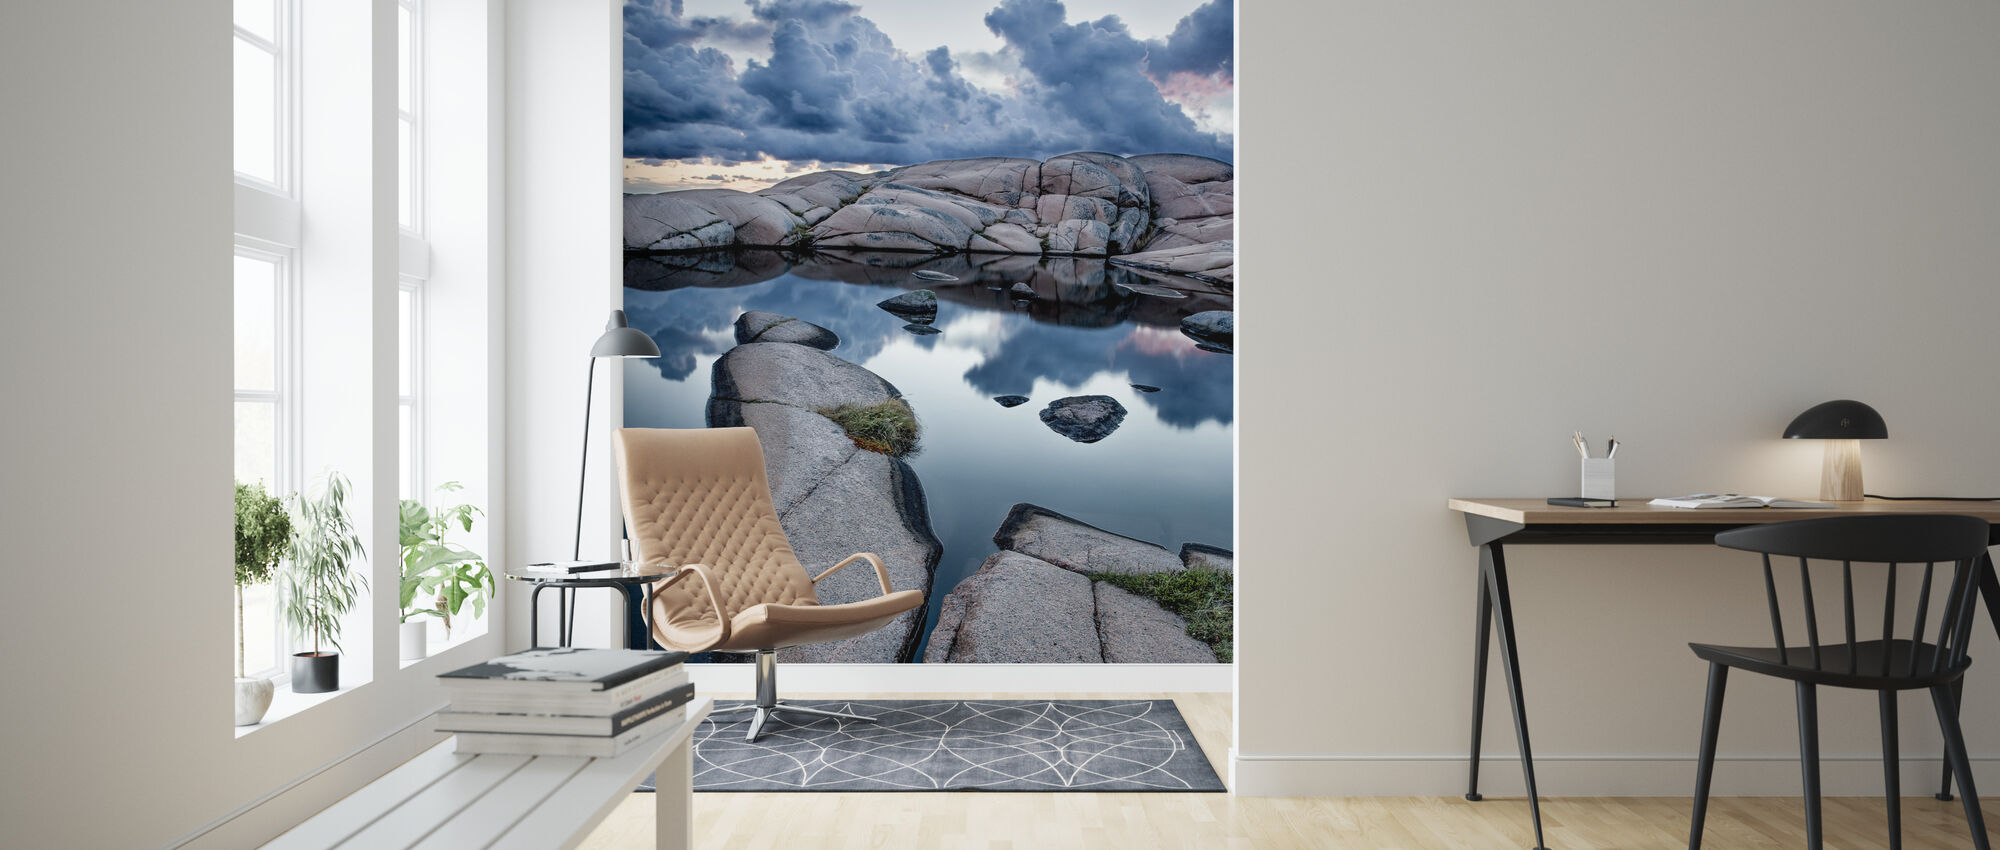 Stones and Water - Wallpaper - Living Room